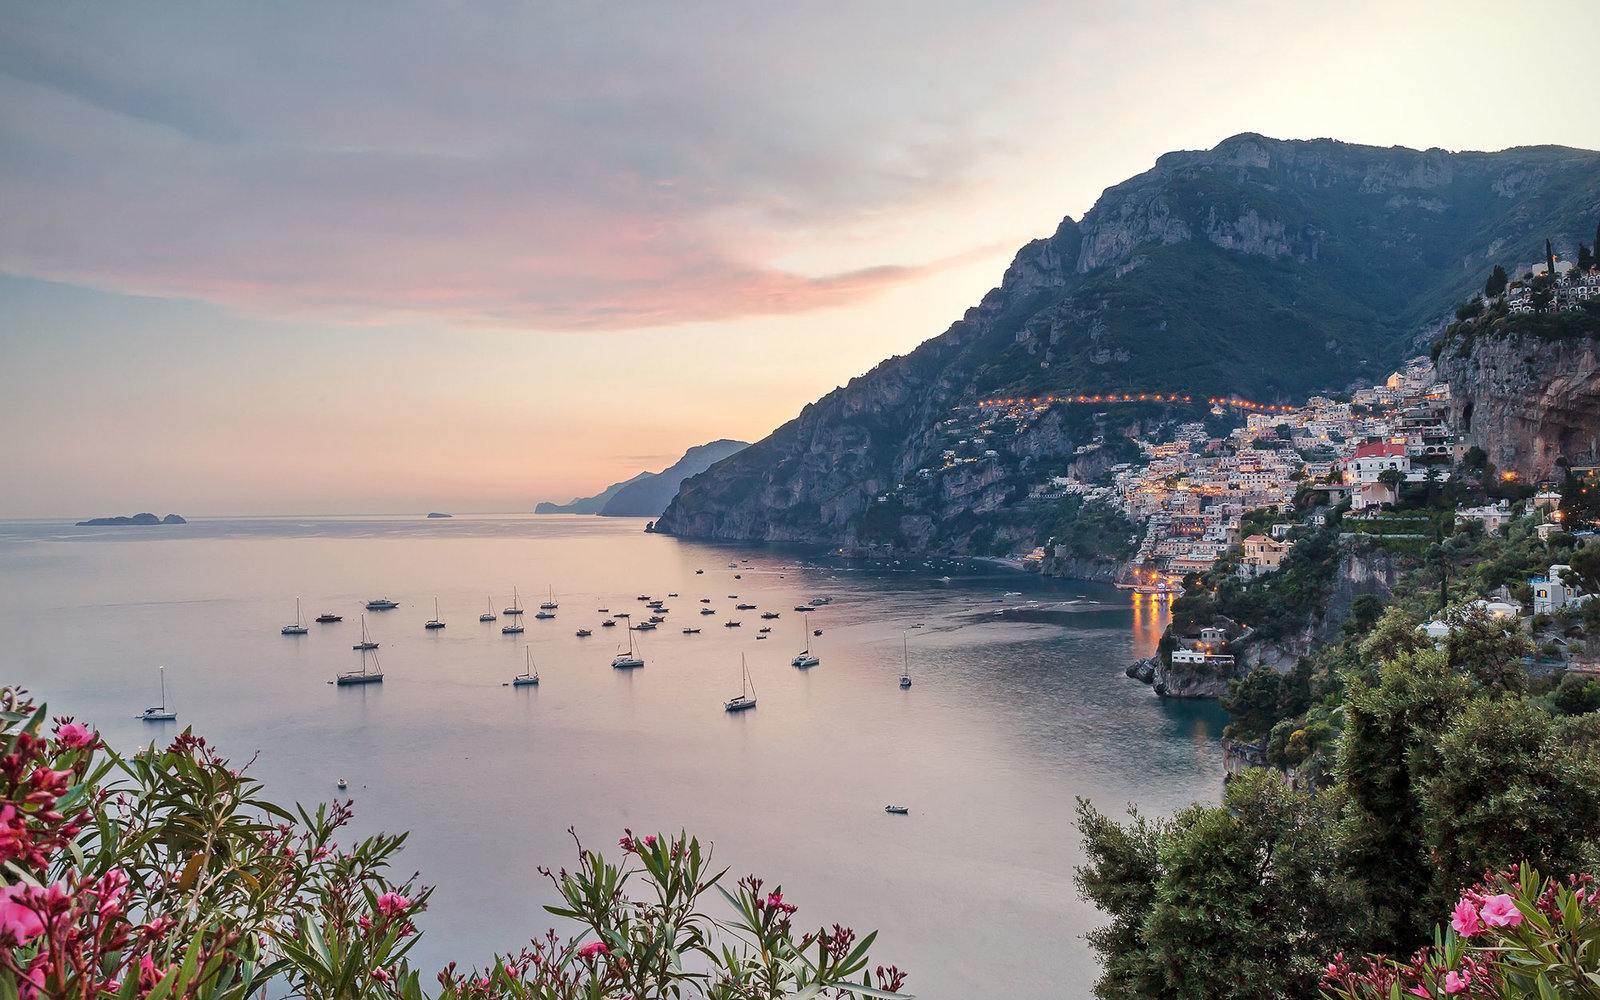 A Sunrise Over the Amalfi Coast